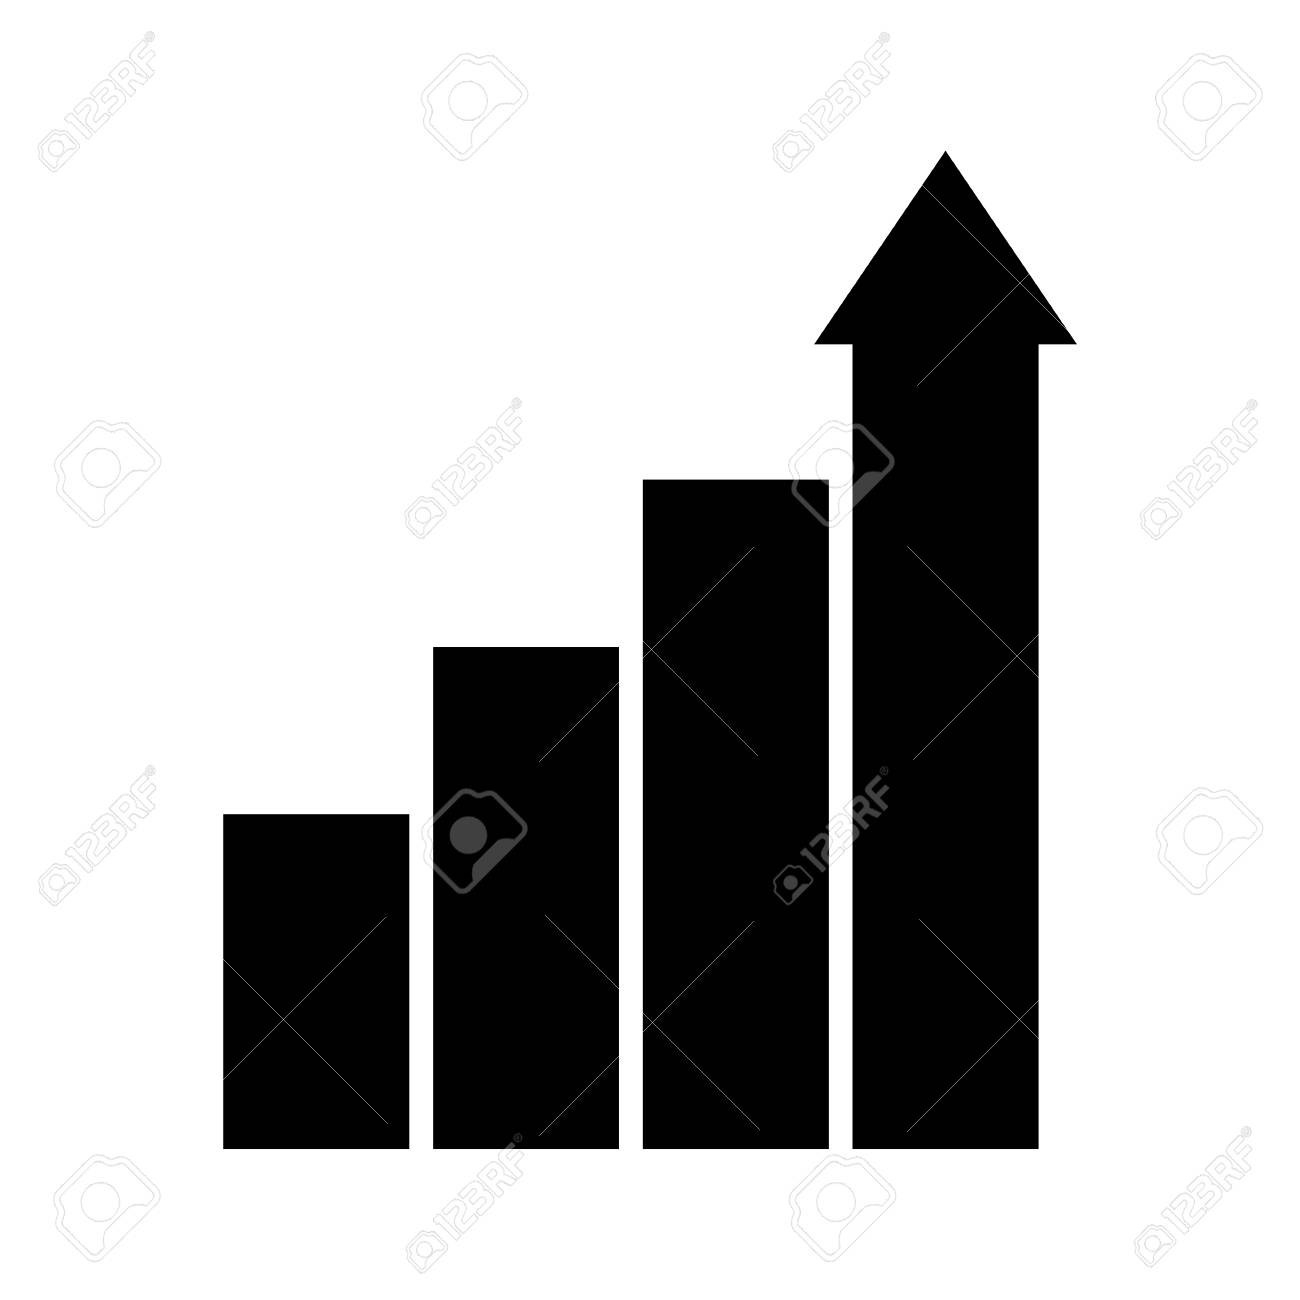 Chart clipart black and white. Bar graph printable formats